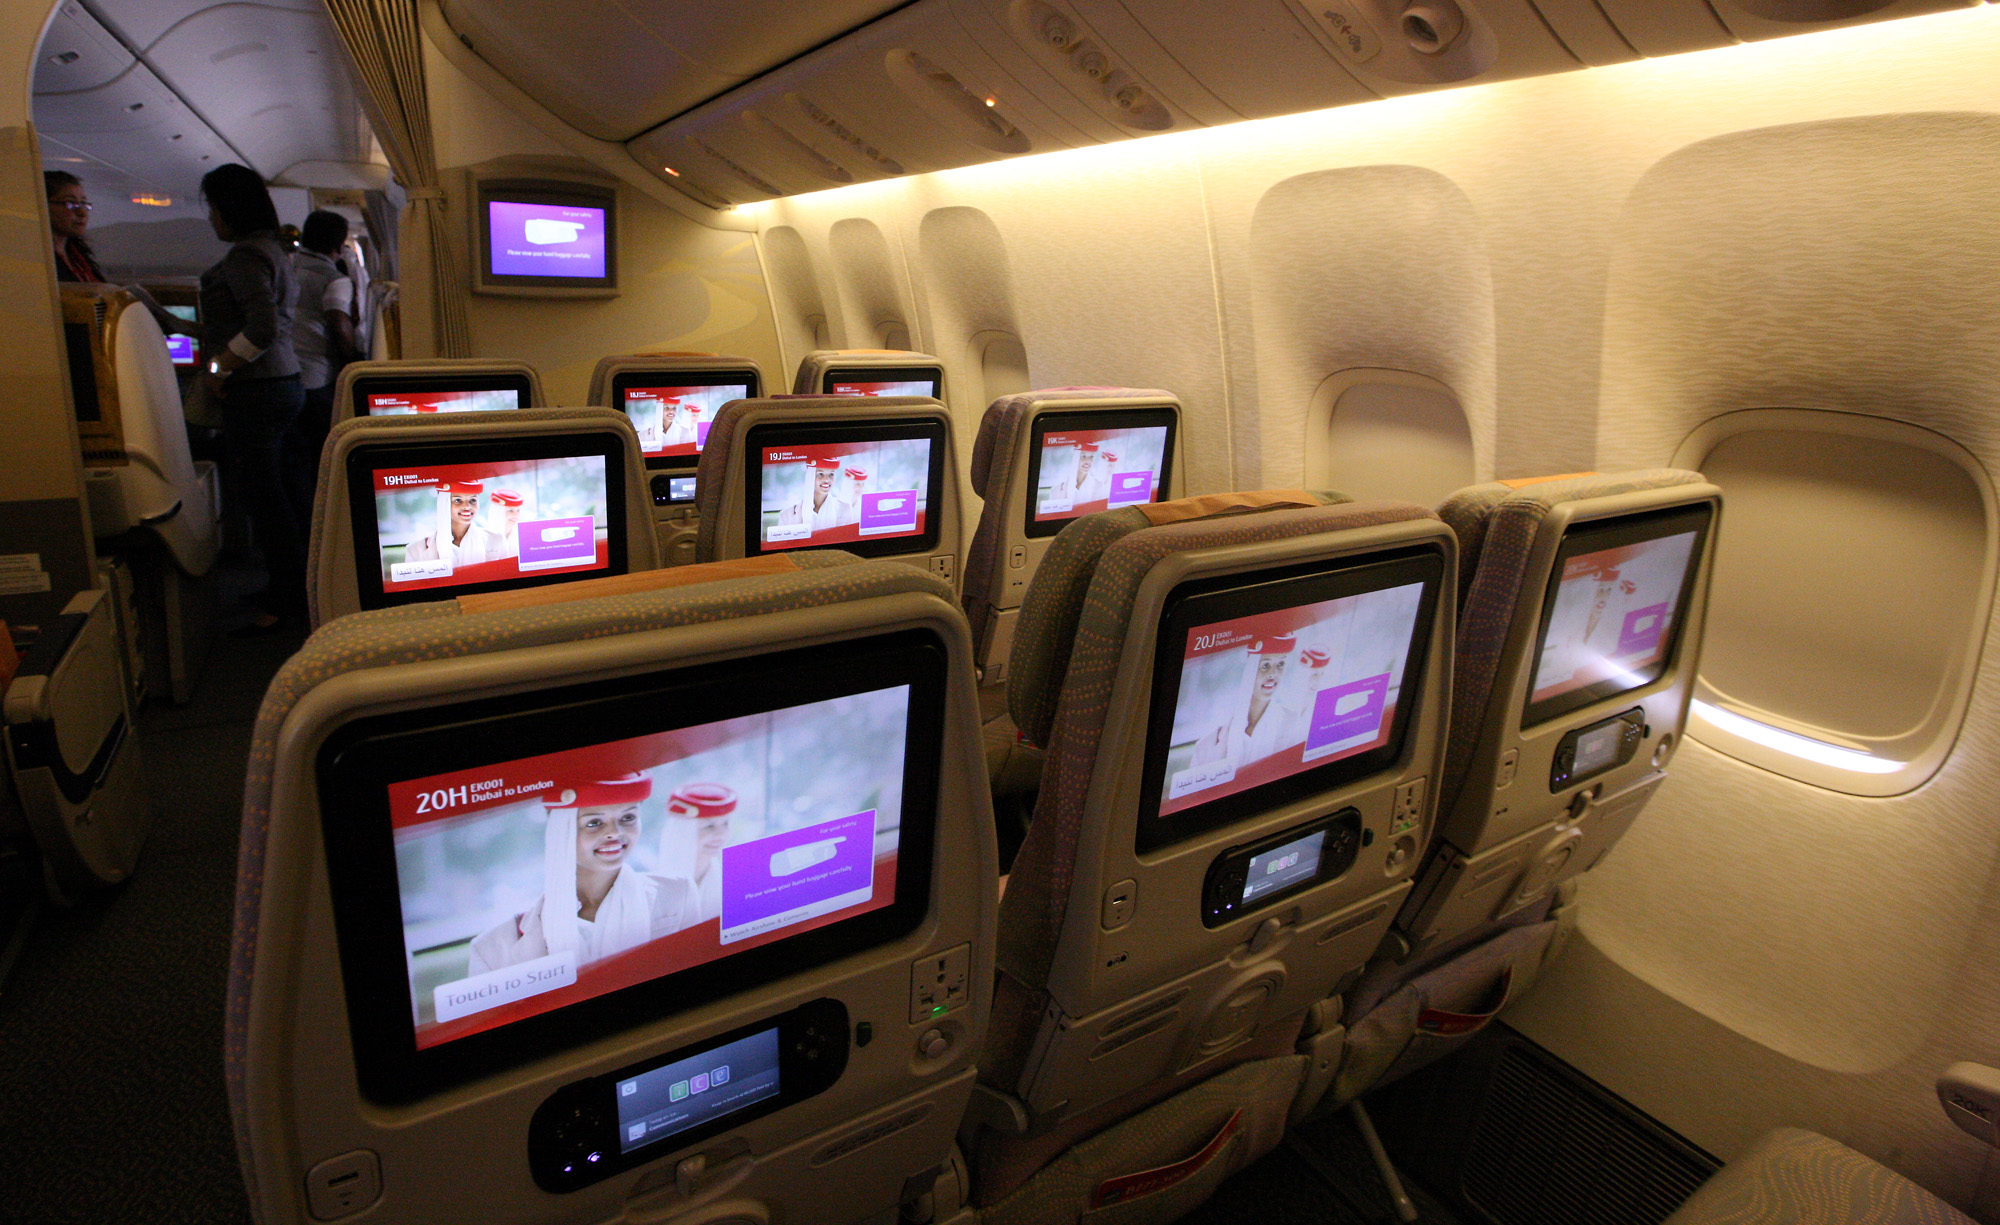 Emirates Announces Wide Television Screens Onboard